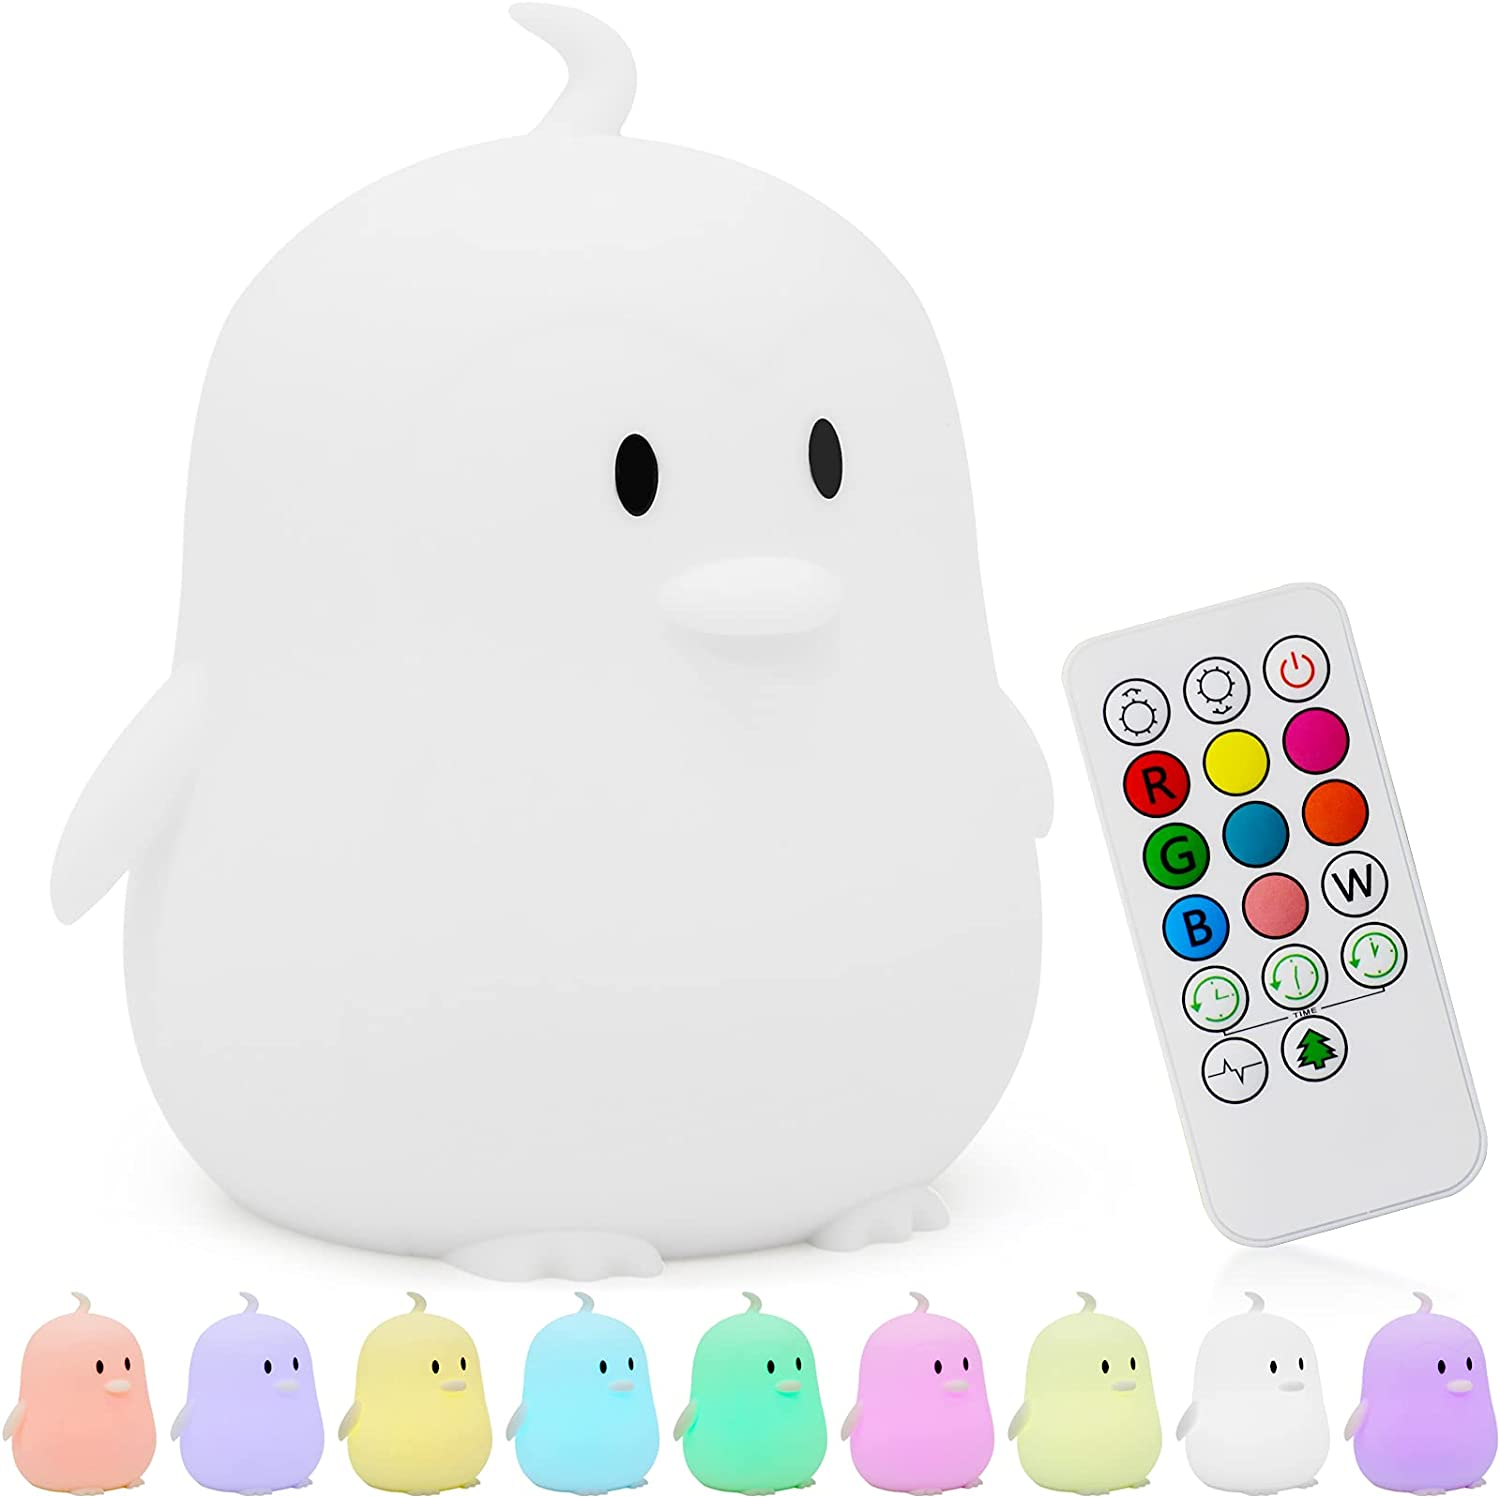 Kids Night Light, Kawaii Room Decor, Cute Penguin Nursery Light for Baby,Toddler, Silicone LED Lamp, Portable Toys Lamp with Remote, Timer Auto Shutoff, Baby Bedroom Girls Boys Birthday Gifts